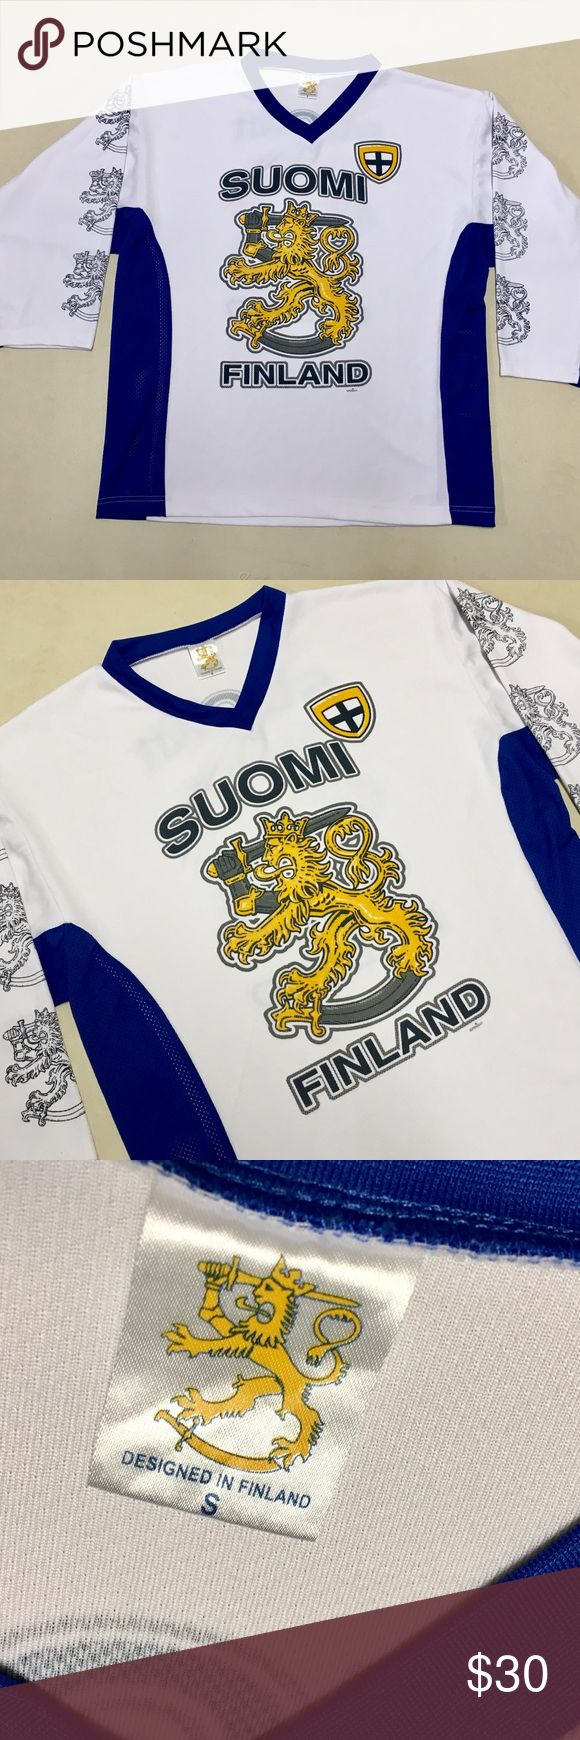 Finland - Suomi Men's Hockey Jersey 🇫🇮 Finland Hockey Jersey  Suomi Finnish Men's National Hockey Team  Size Men's Small   Hockey jersey runs a size or two larger!  Excellent condition!  🏒 Shirts Tees - Long Sleeve